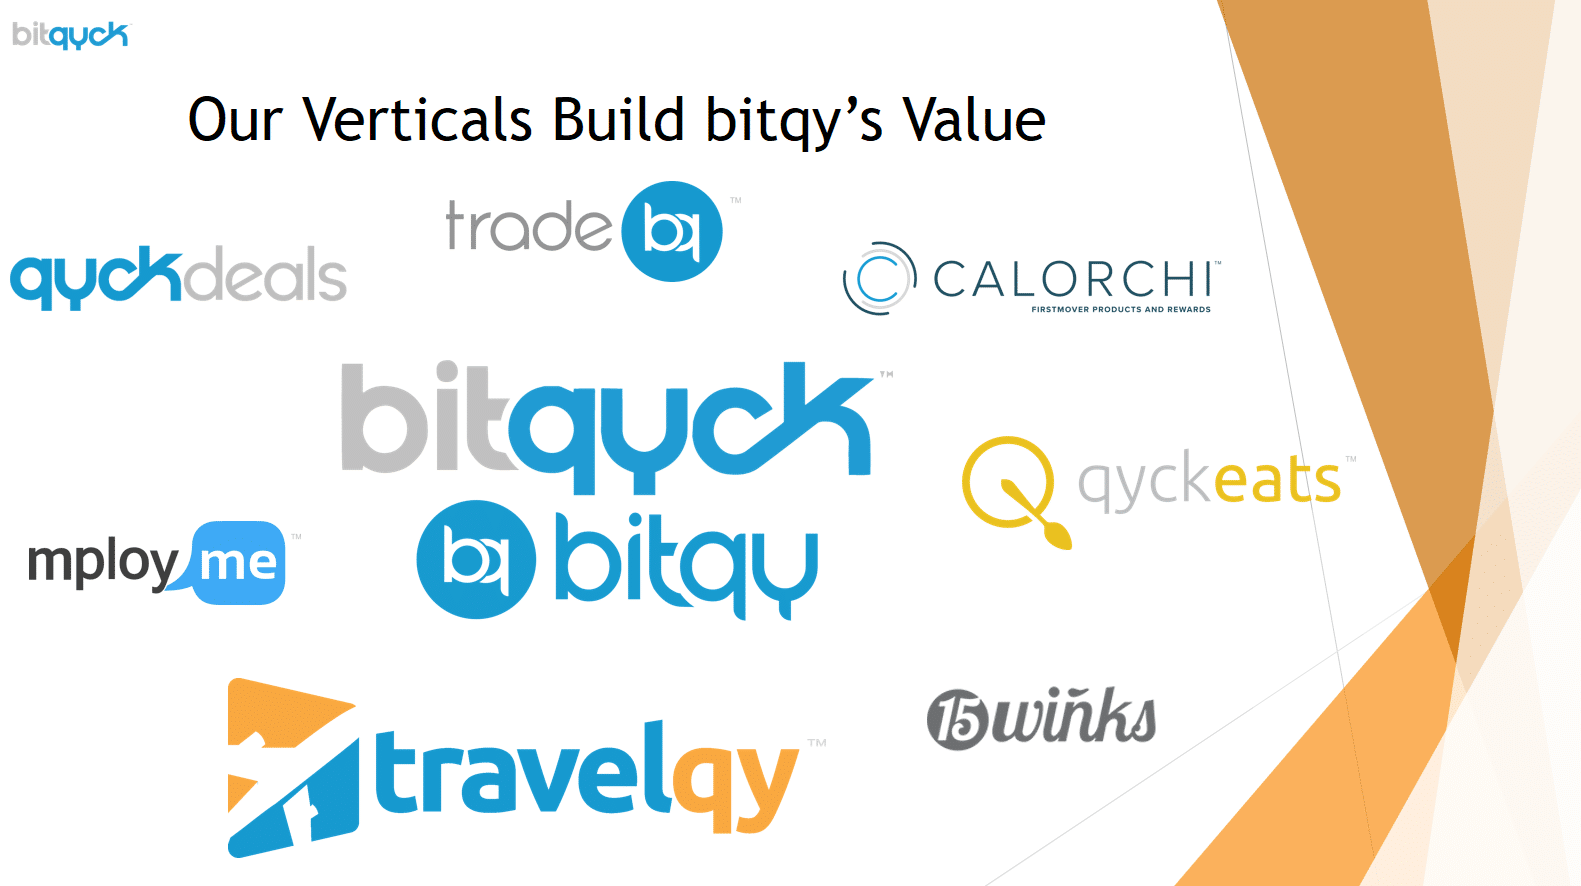 Bitqyck Verticals Build Bitqy's Value